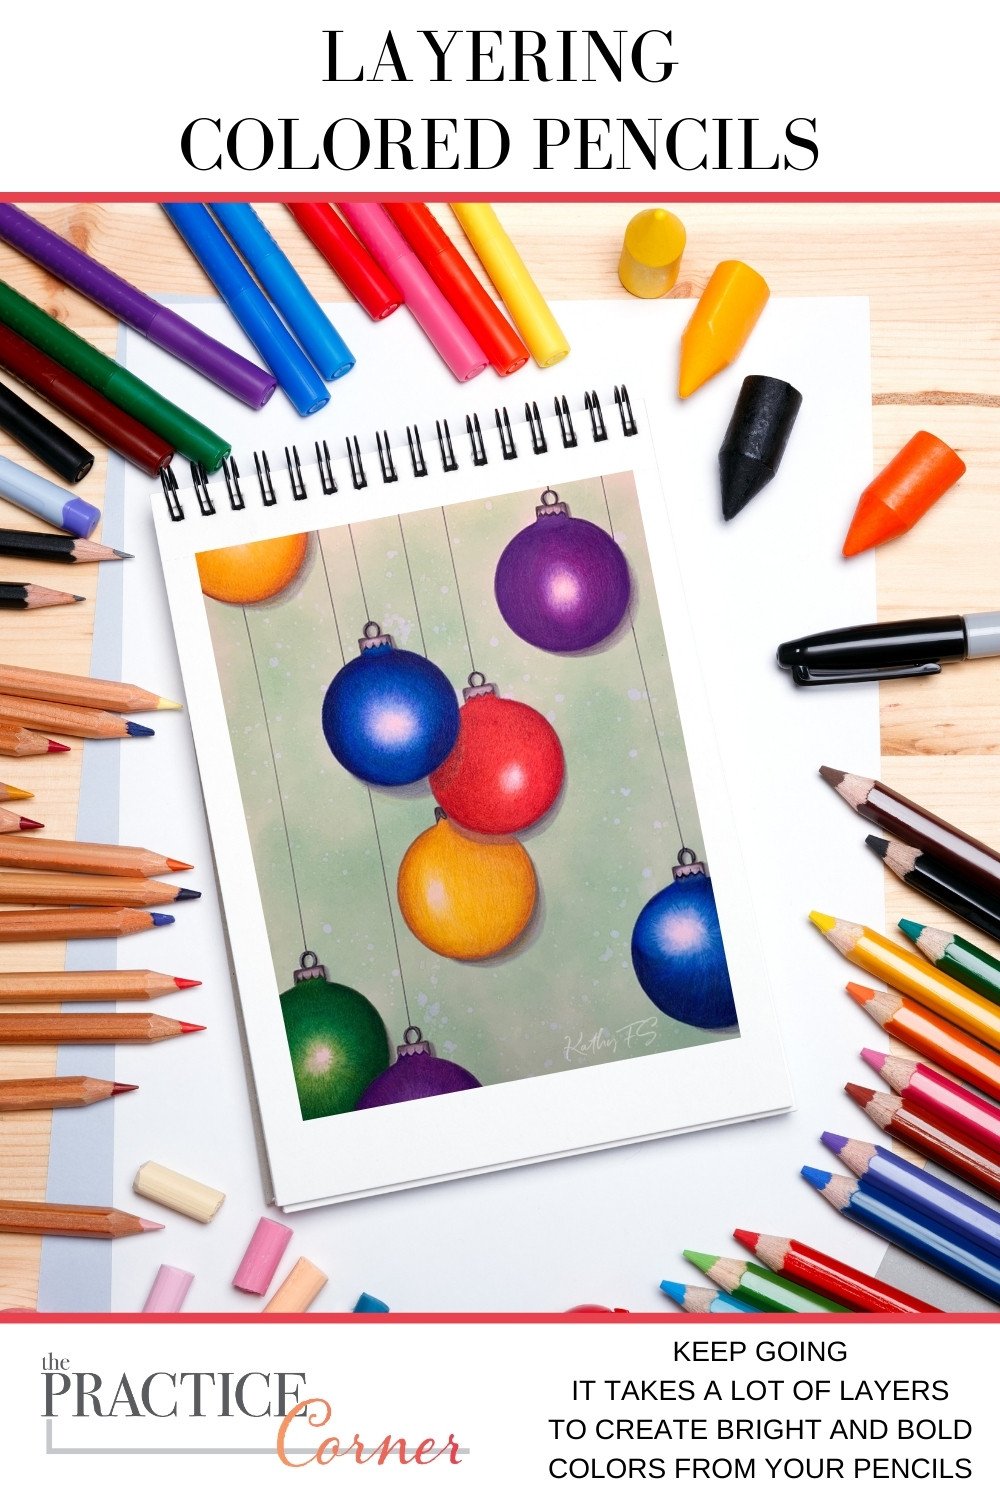 It takes a lot of layers to create bold and beautiful color with colored pencils. | The Practice Corner | #coloredpencilpractice #layeringcoloredpencil